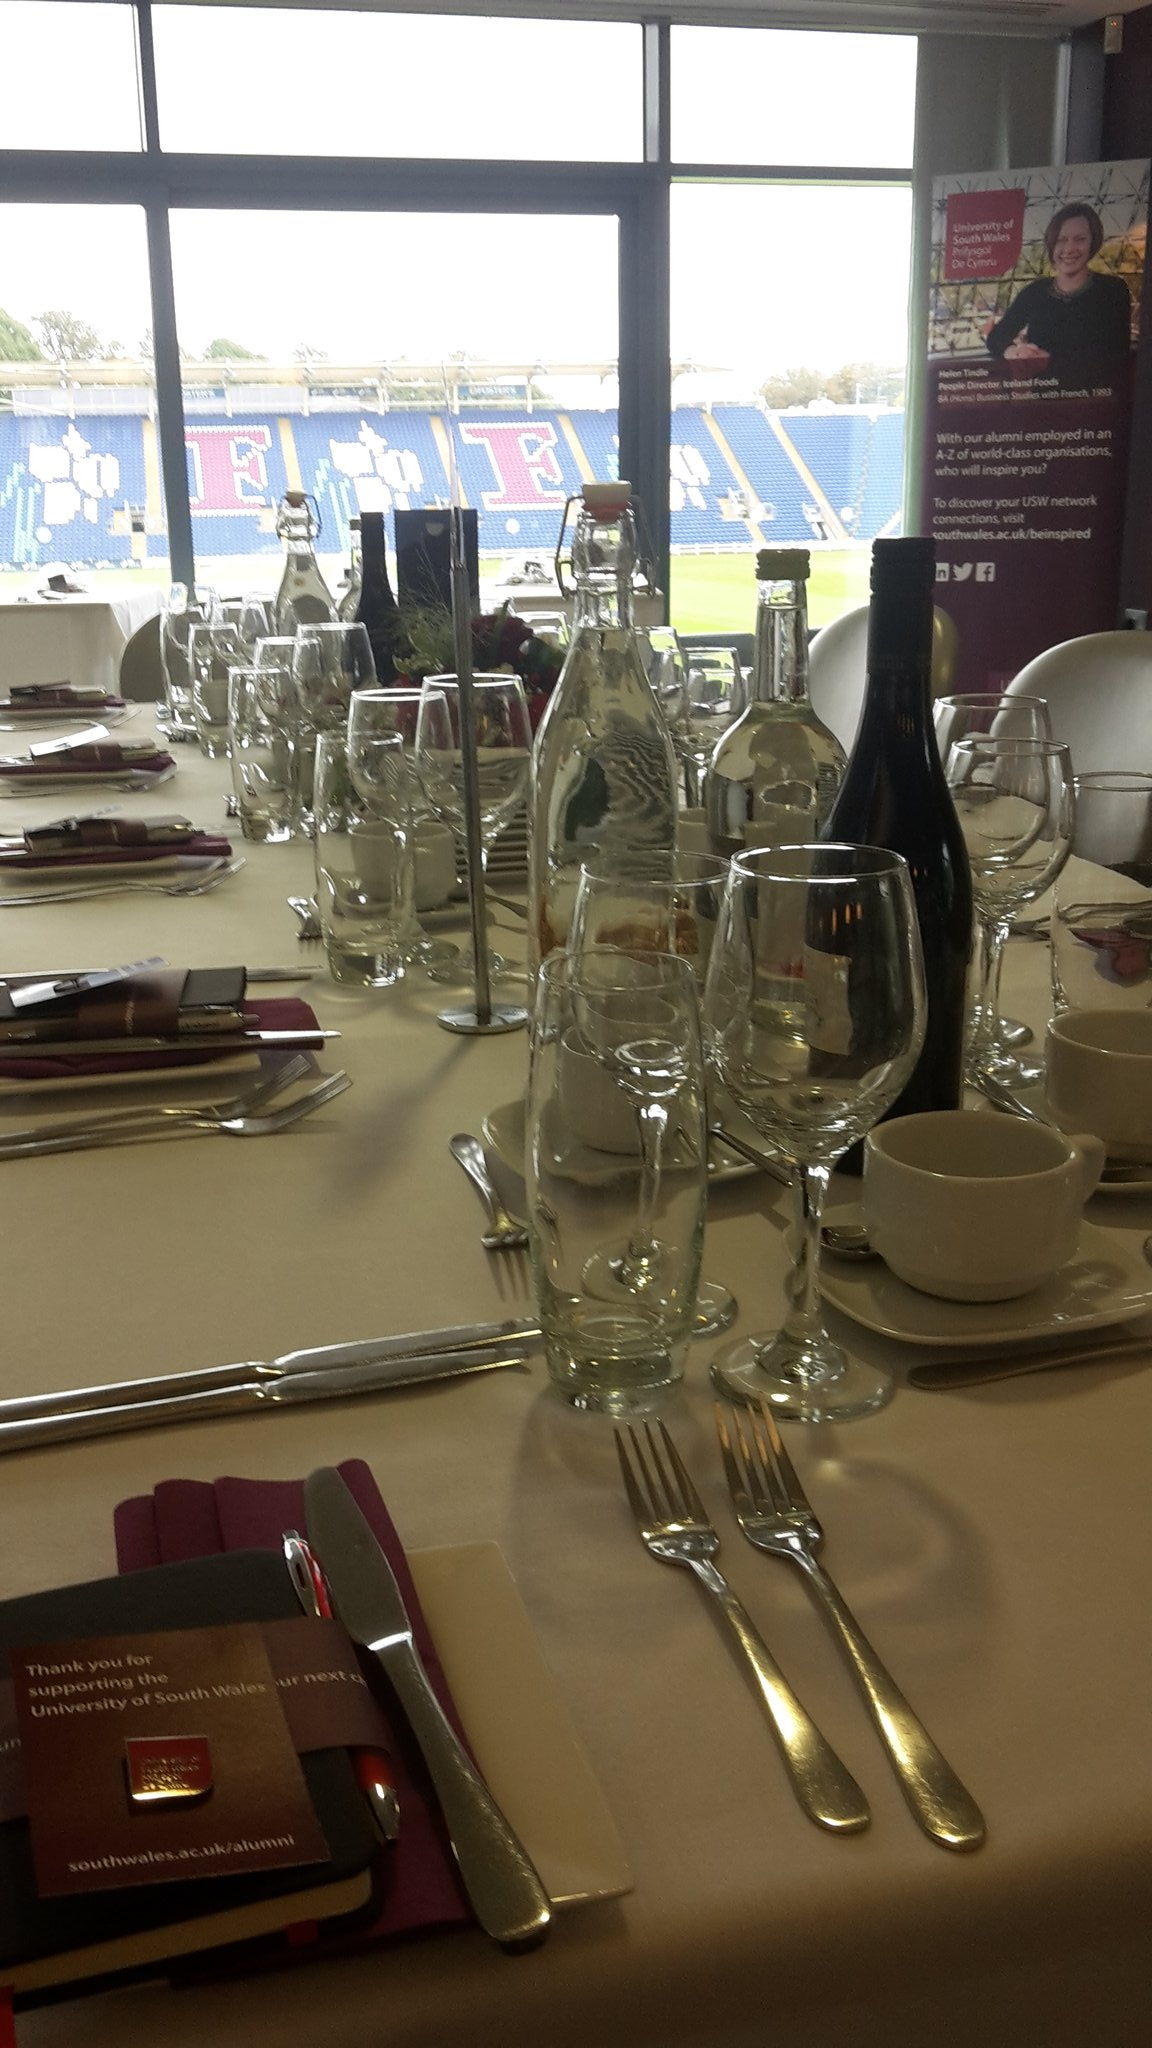 All ready for #USWAlumniAwards and Supporter Reception @GlamCricket this evening.. https://t.co/74rq14SeYD